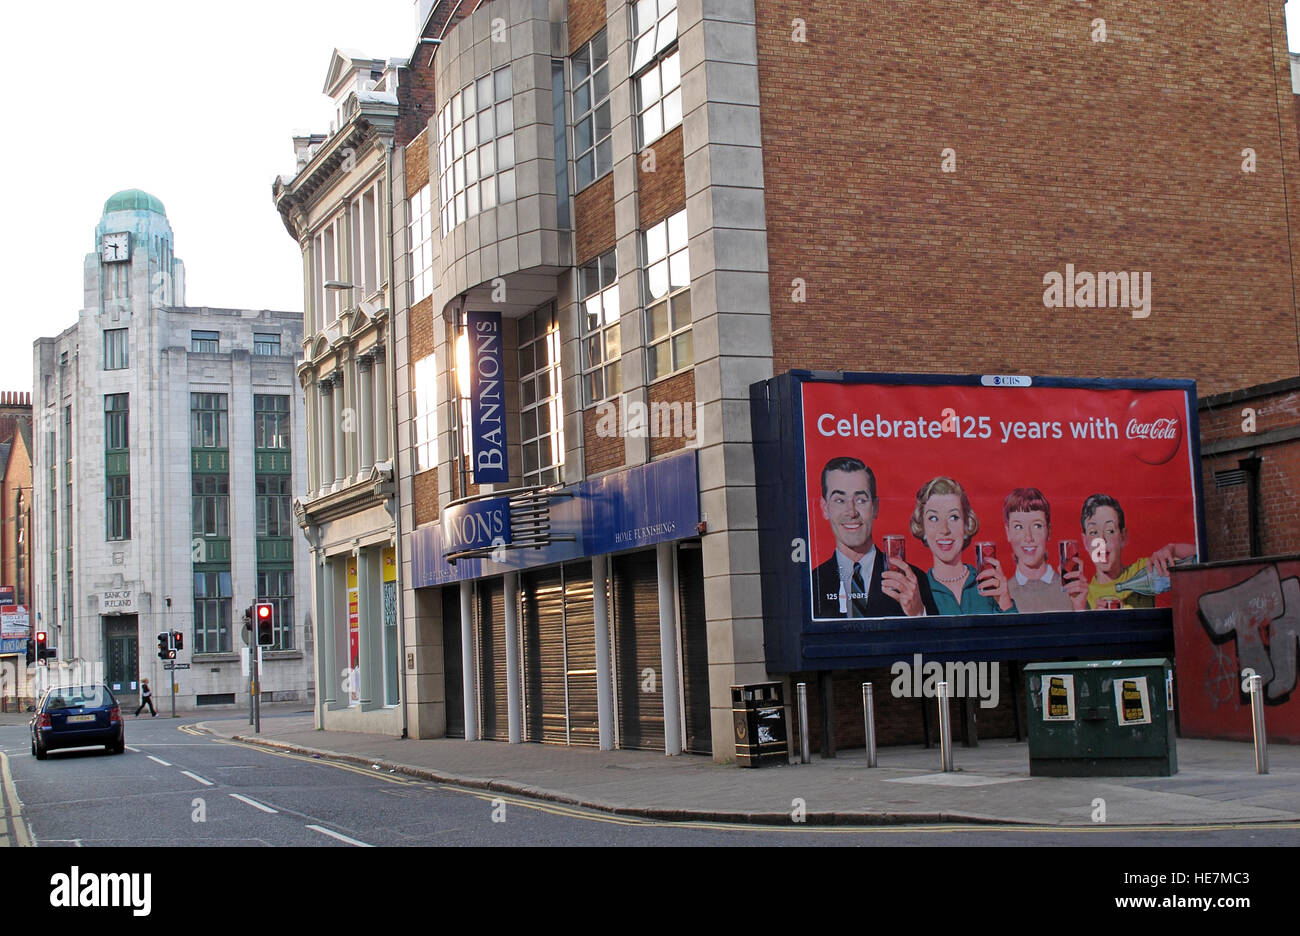 Belfast Garfield Street,Garfield Street,streets,City Centre,city,centre,Northern Ireland,UK,75 North St,75 North Street,Department,Bannons Shop,Store,Department store,celebrate,125,years,coke,coca,cola,road,GoTonySmith,@HotpixUK,Tony,Smith,UK,GB,Great,Britain,United,Kingdom,Irish,British,Ireland,problem,with,problem with,issue with,NI,Northern,Northern Ireland,Belfast,City,Centre,Art,Artists,graffiti,grafitti,honour,painting,wall,walls,tribute,grafiti,paint,painting,tag,tagging,tagged,Fight,Justice,West,Beal,feirste,martyrs,social,tour,tourism,tourists,urban,six,counties,6,backdrop,county,Antrim,Belfast Garfield St,Buy Pictures of,Buy Images Of,Images of,Stock Images,Tony Smith,United Kingdom,Great Britain,British Isles